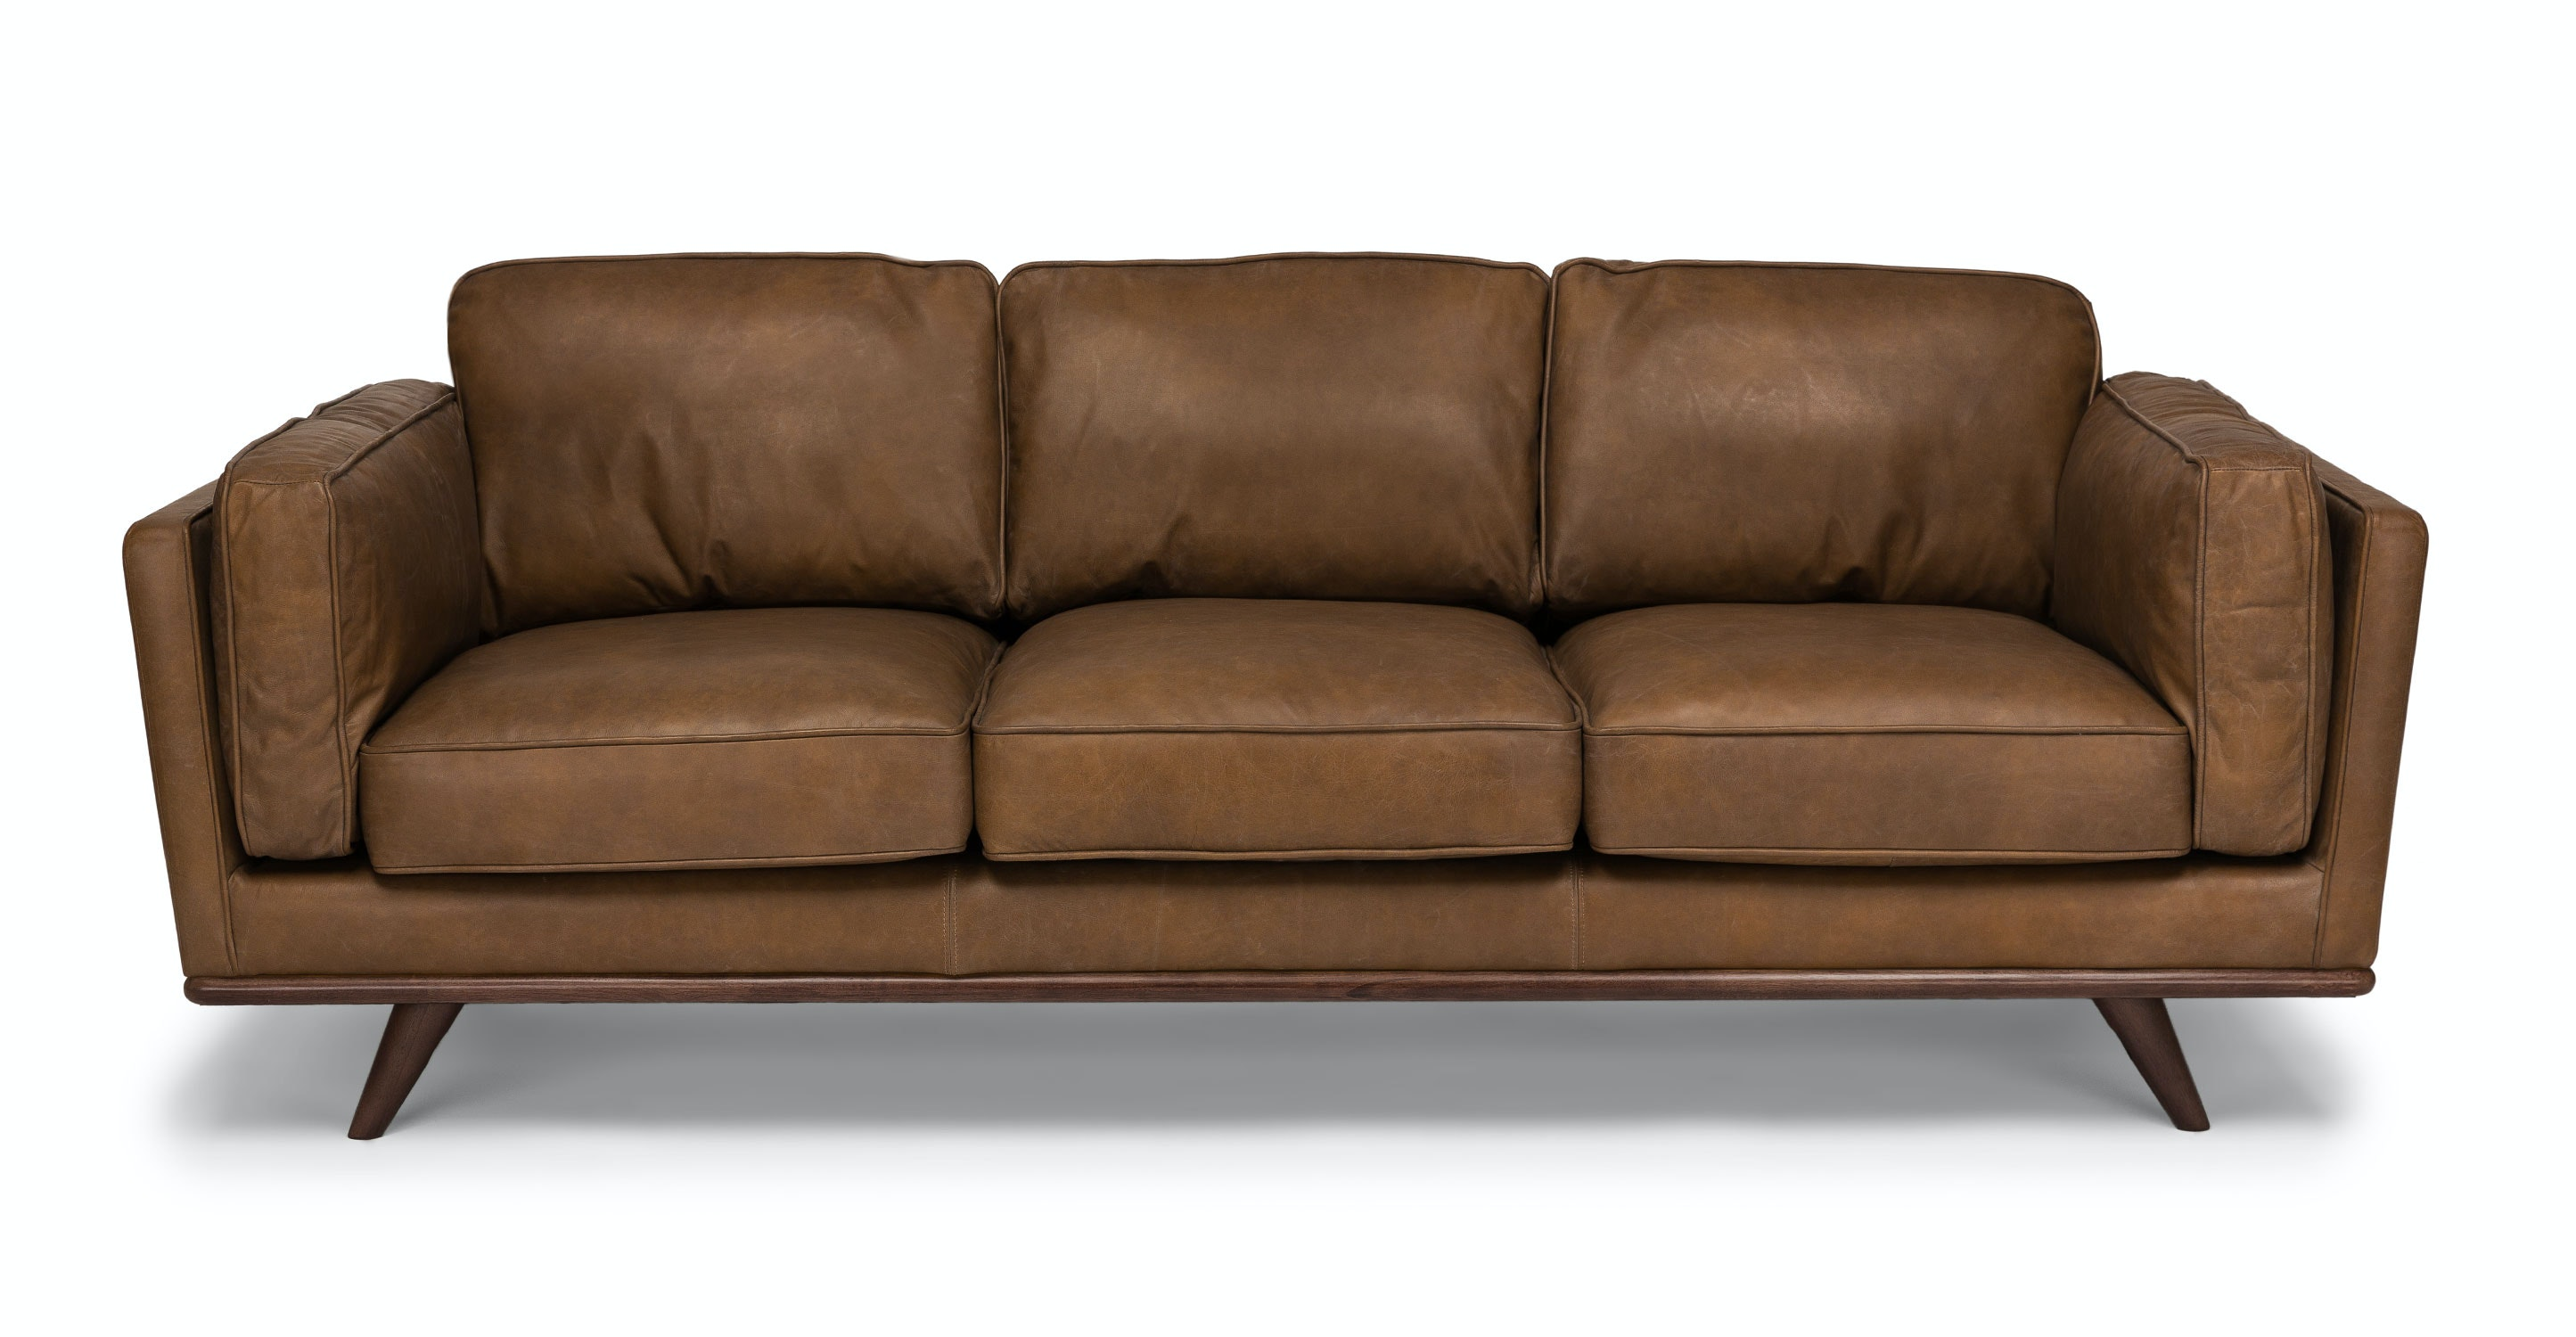 Timber Charme Tan Sofa Sofas Article